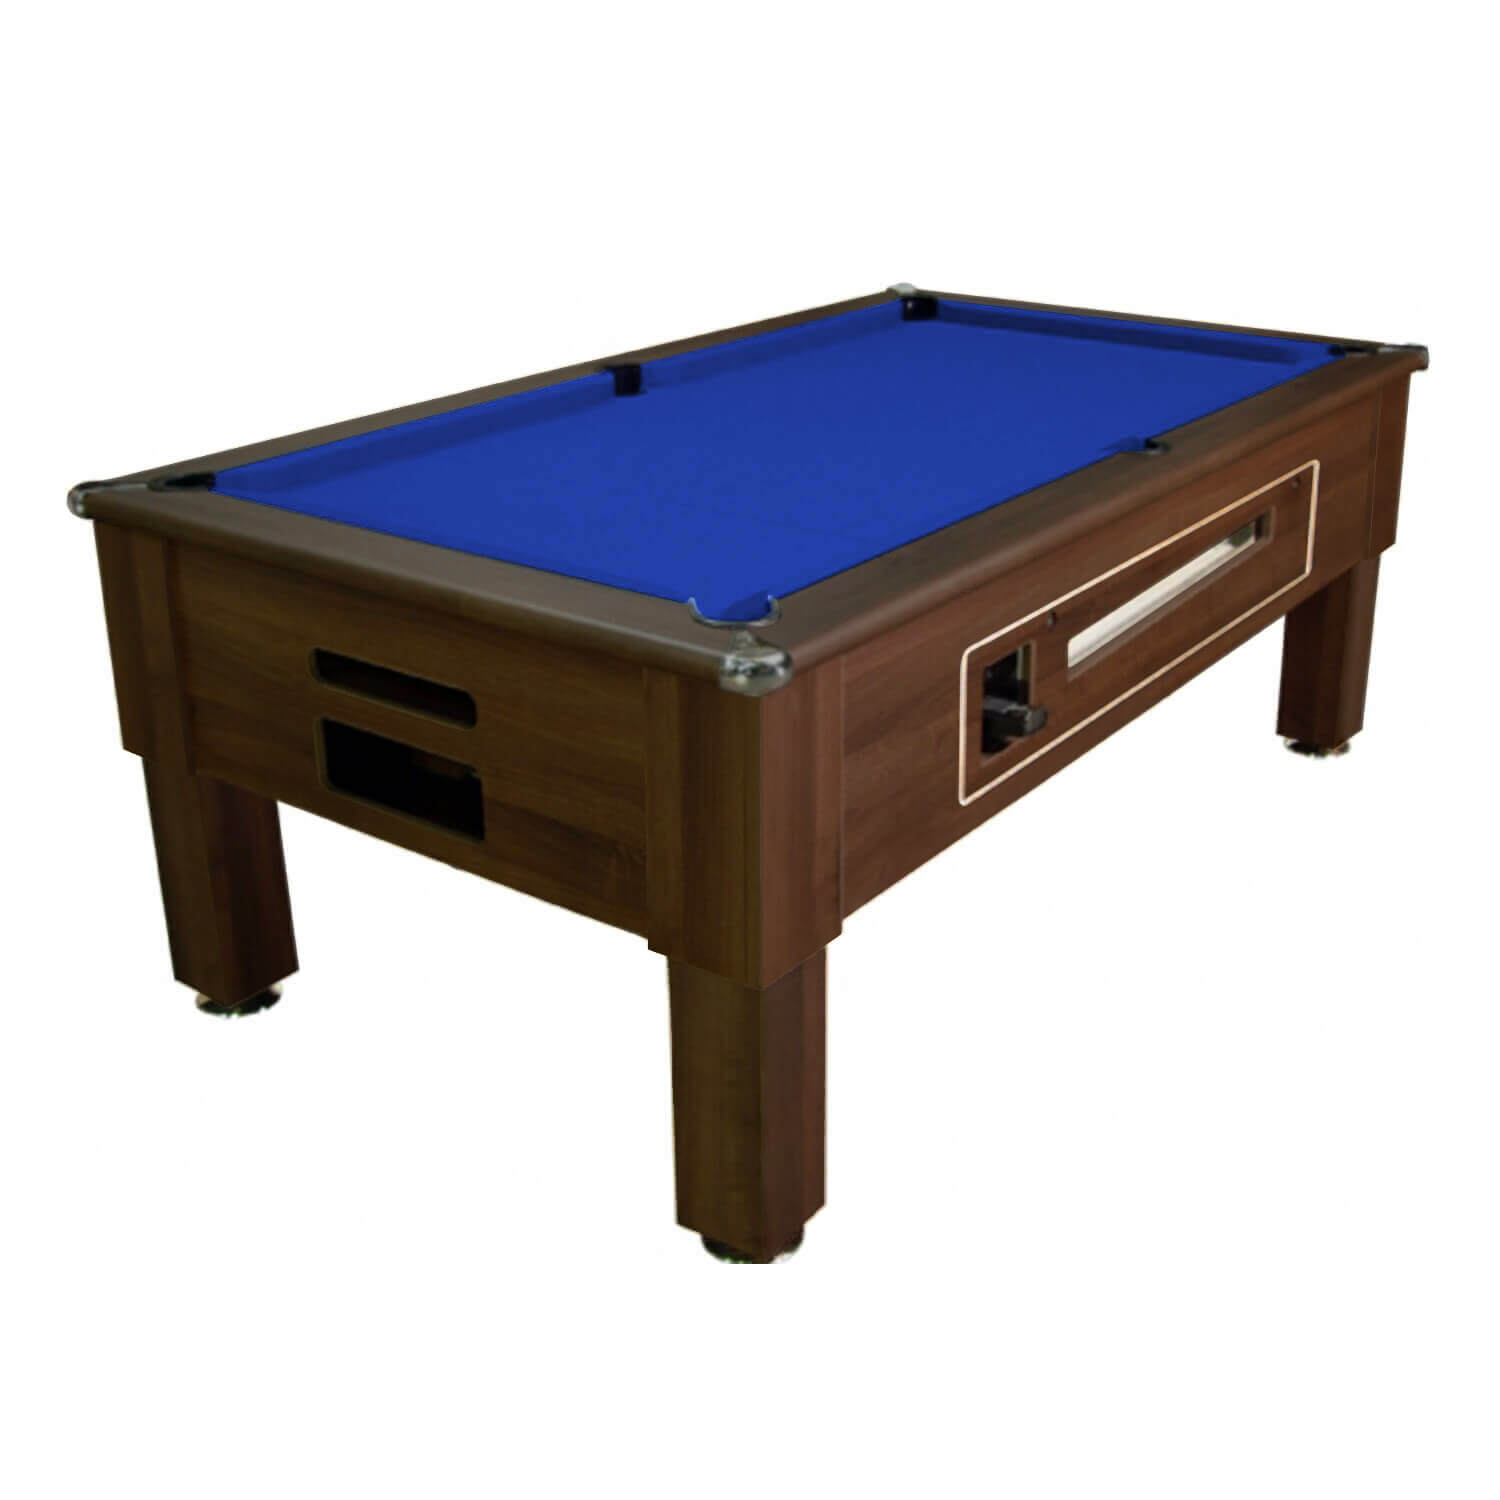 Prime slate bed pool table 6 ft 7 ft liberty games for Table 6 feet